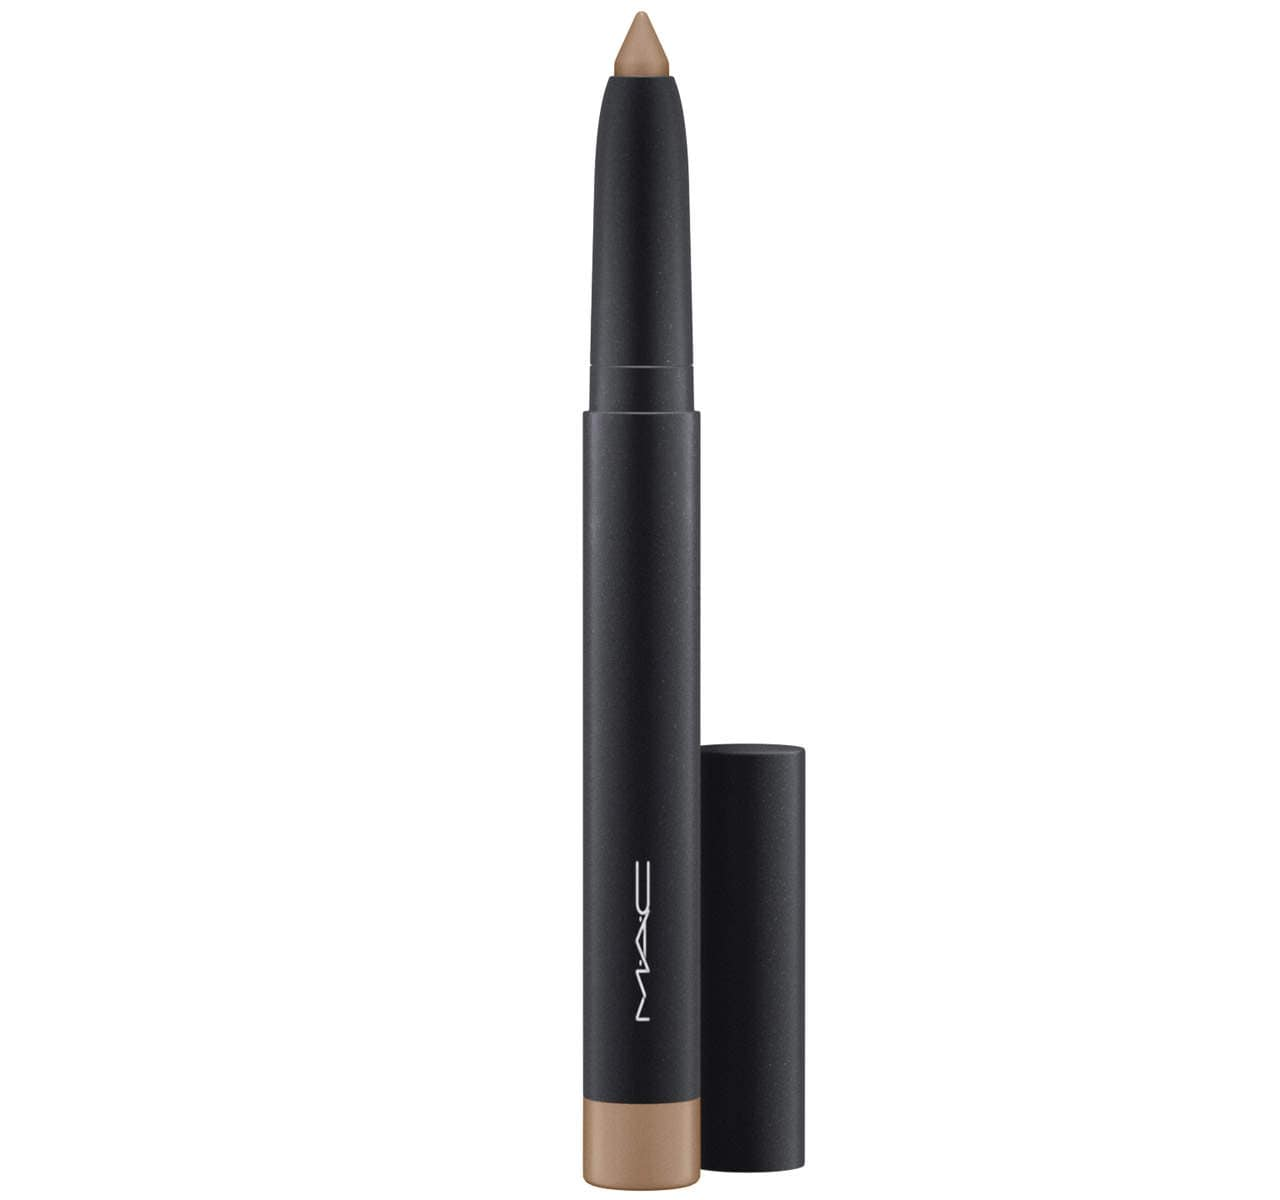 Big Brow Pencil Mac Cosmetics Mexico Sitio Oficial